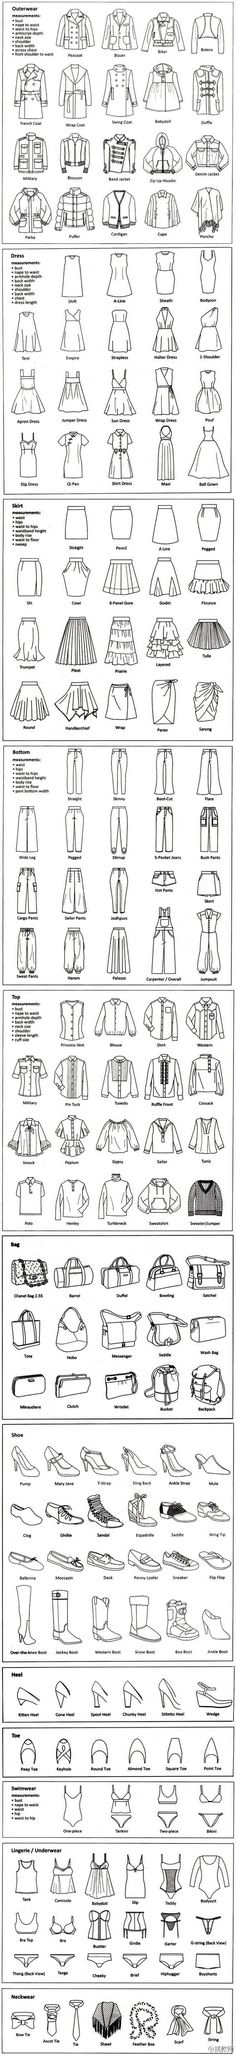 Garment fashion term